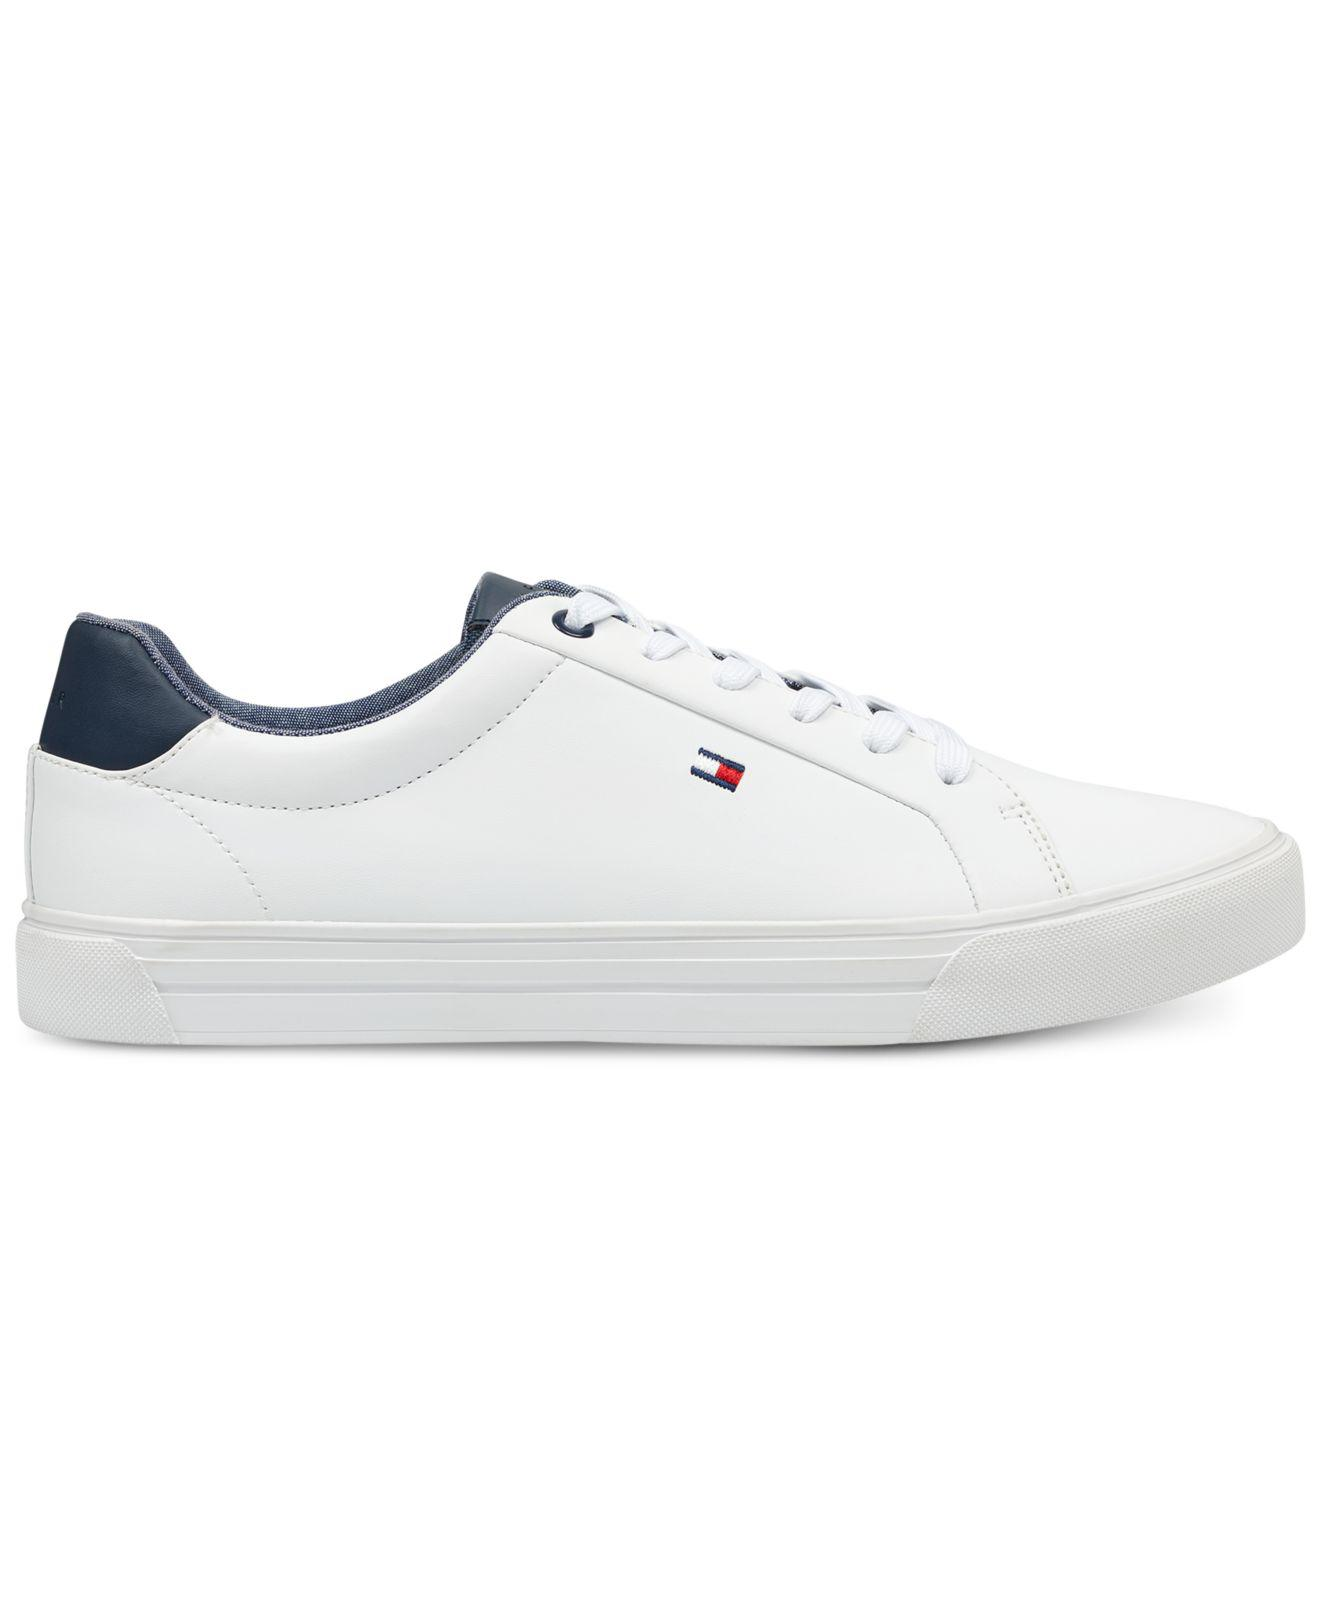 98f8611771c3 Lyst - Tommy Hilfiger Ref Low-top Sneakers in White for Men